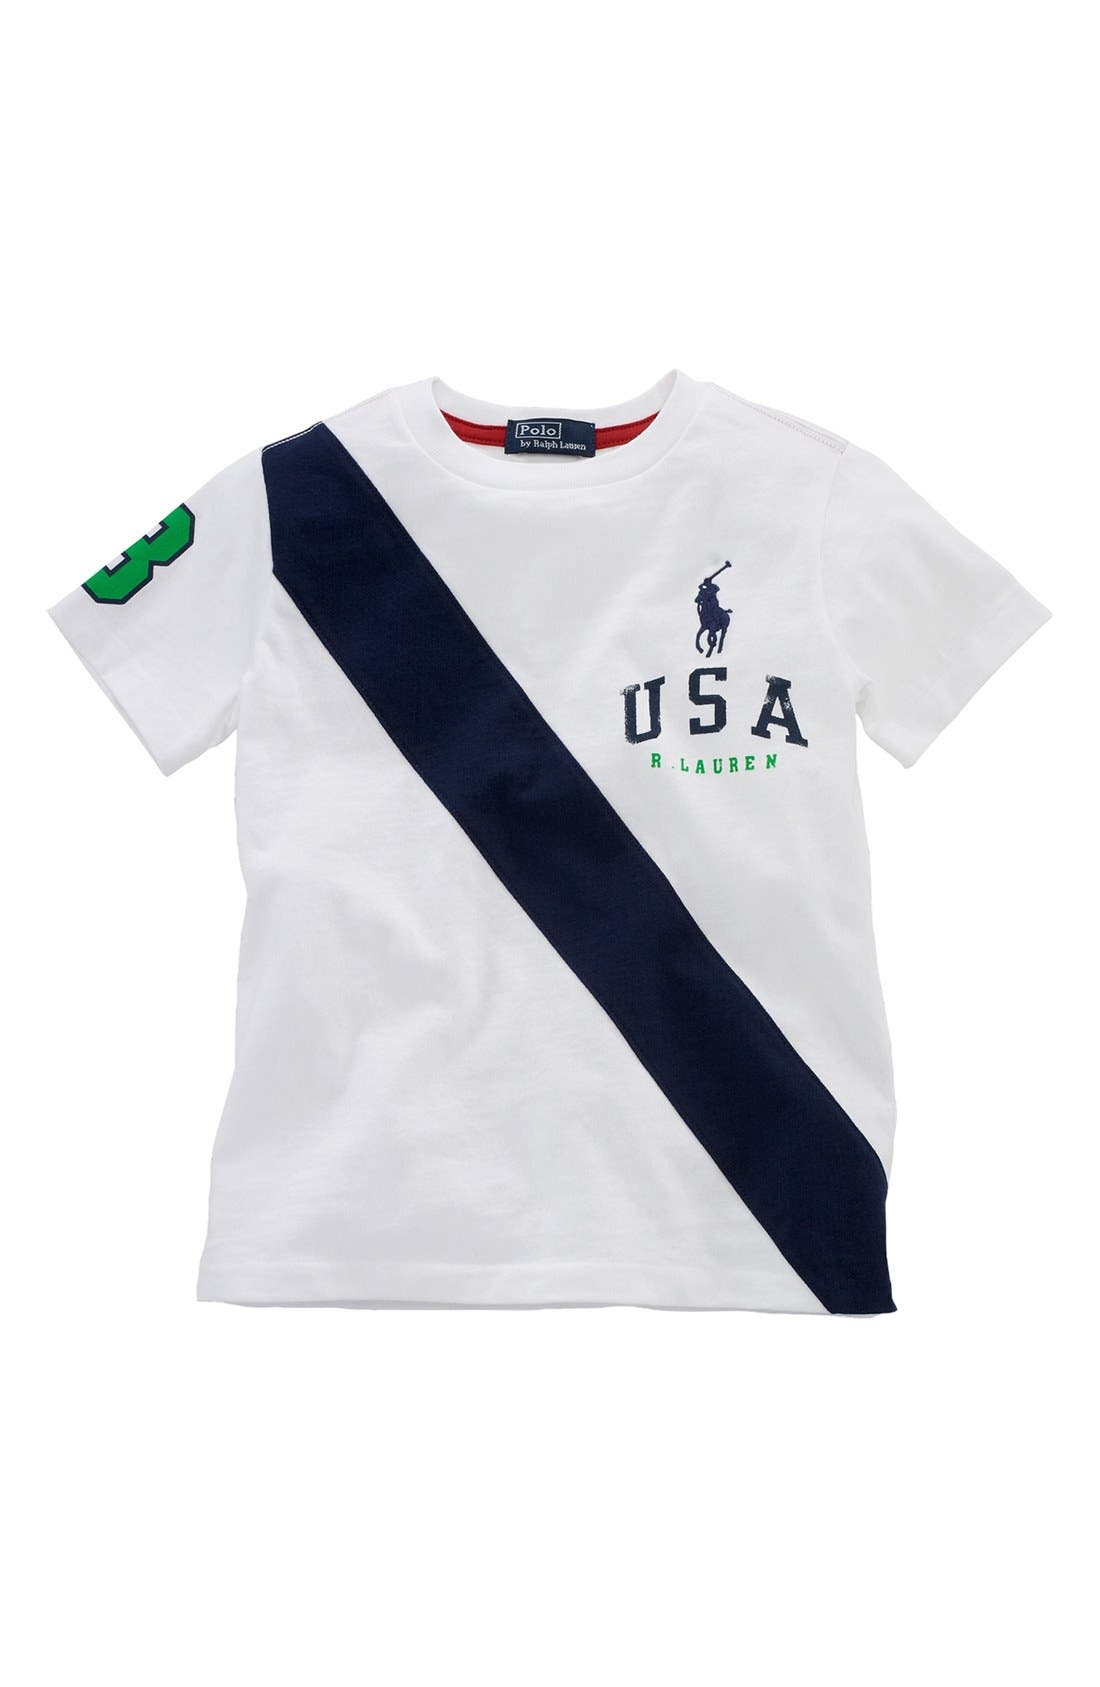 Alternate Image 1 Selected - Polo Ralph Lauren 'USA Banner' T-Shirt (Toddler)